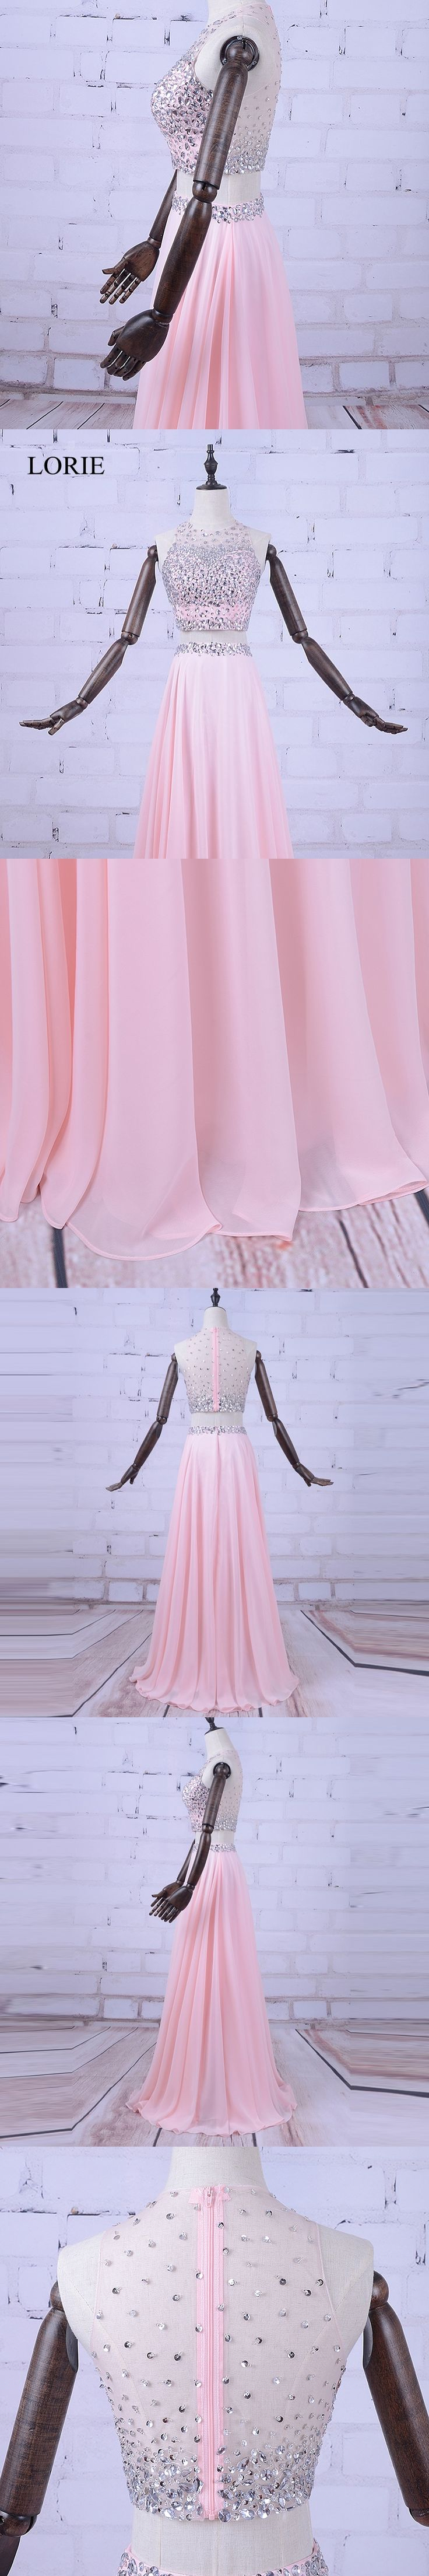 A Line 2 Piece Prom Dresses 2017 Crystals Beaded Pink Chiffon Long Evening Dress Robes De Soiree Formal Party Gown Fast Shipping